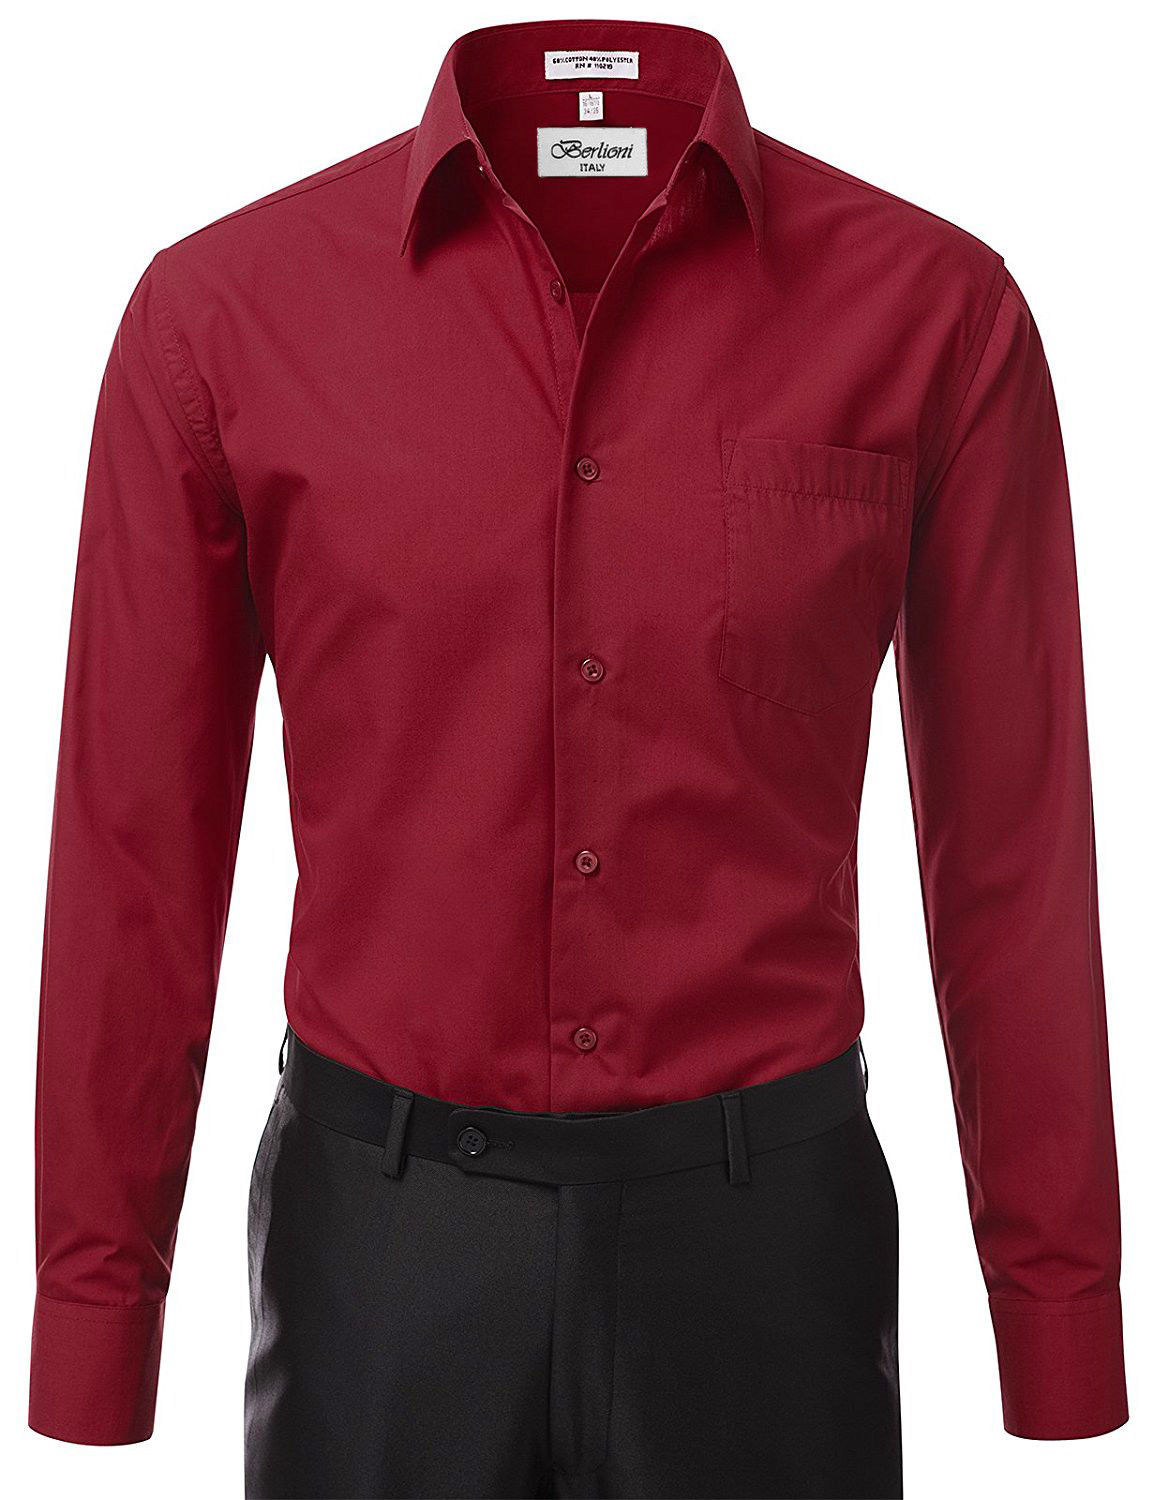 Berlioni-Italy-Men-039-s-Premium-Classic-French-Convertible-Cuff-Solid-Dress-Shirt thumbnail 56